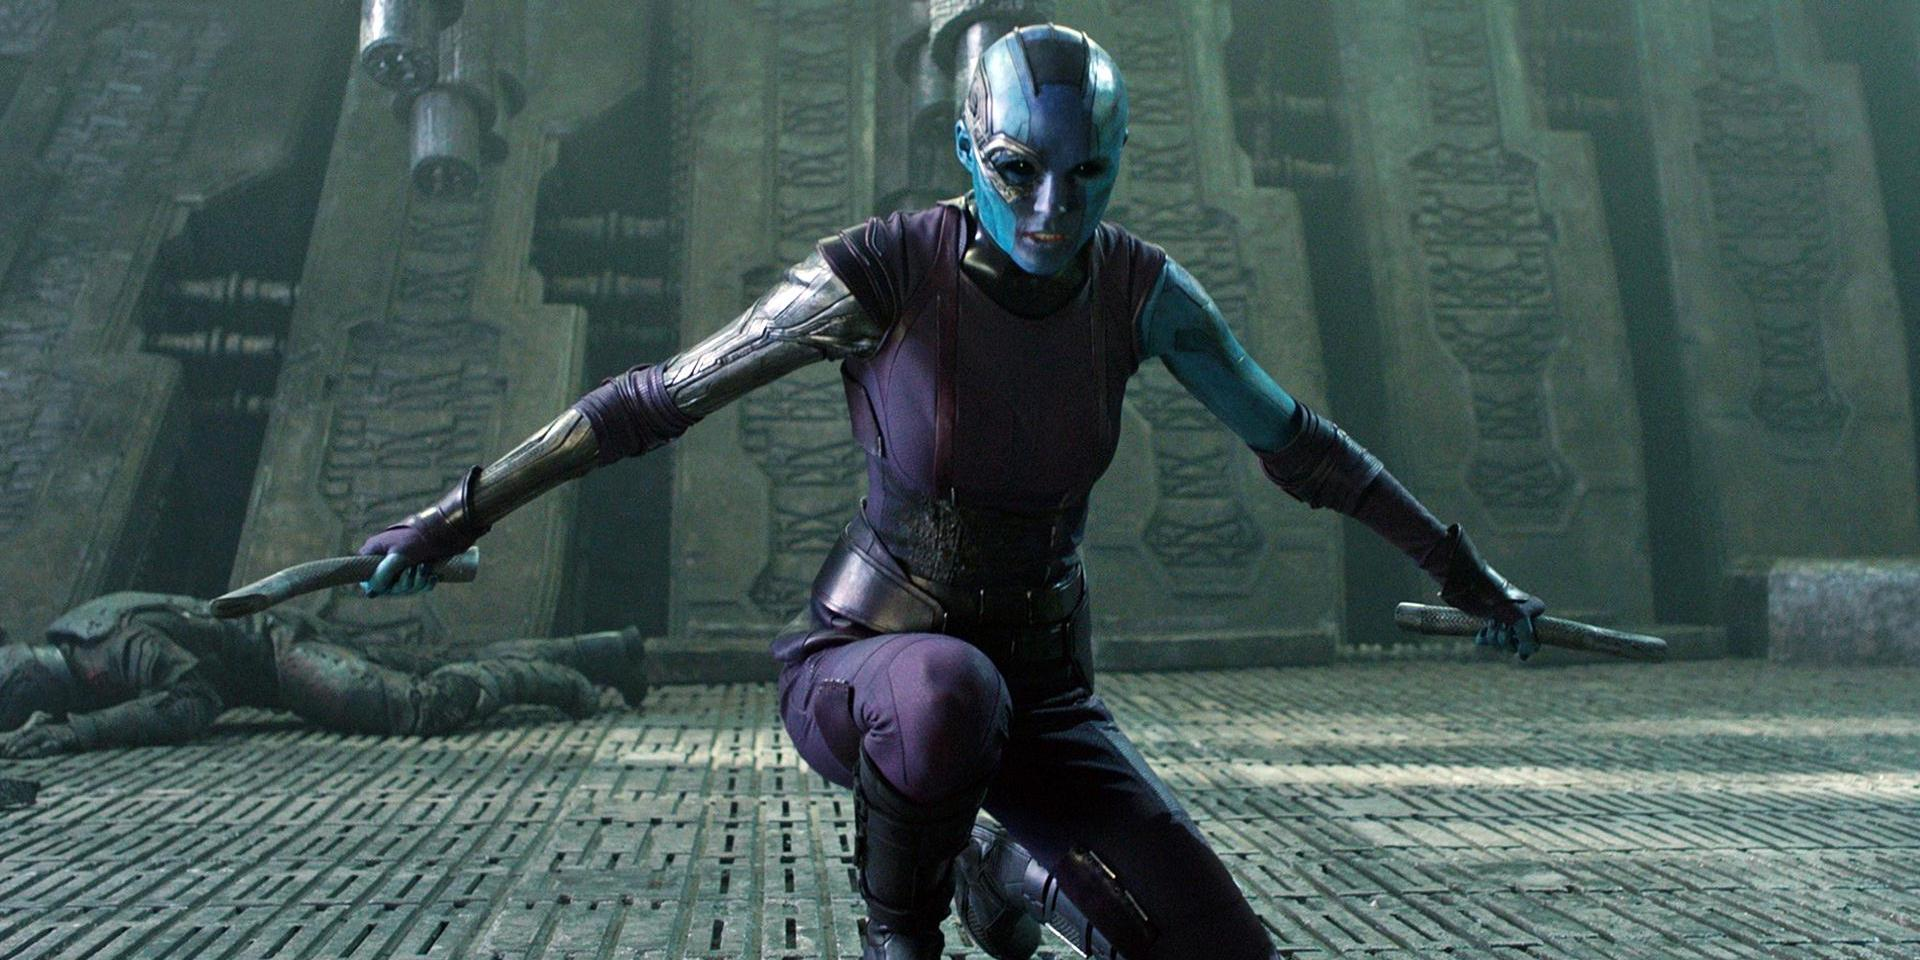 Furious 7 Inspired Guardians of the Galaxy 2 | Screen Rant